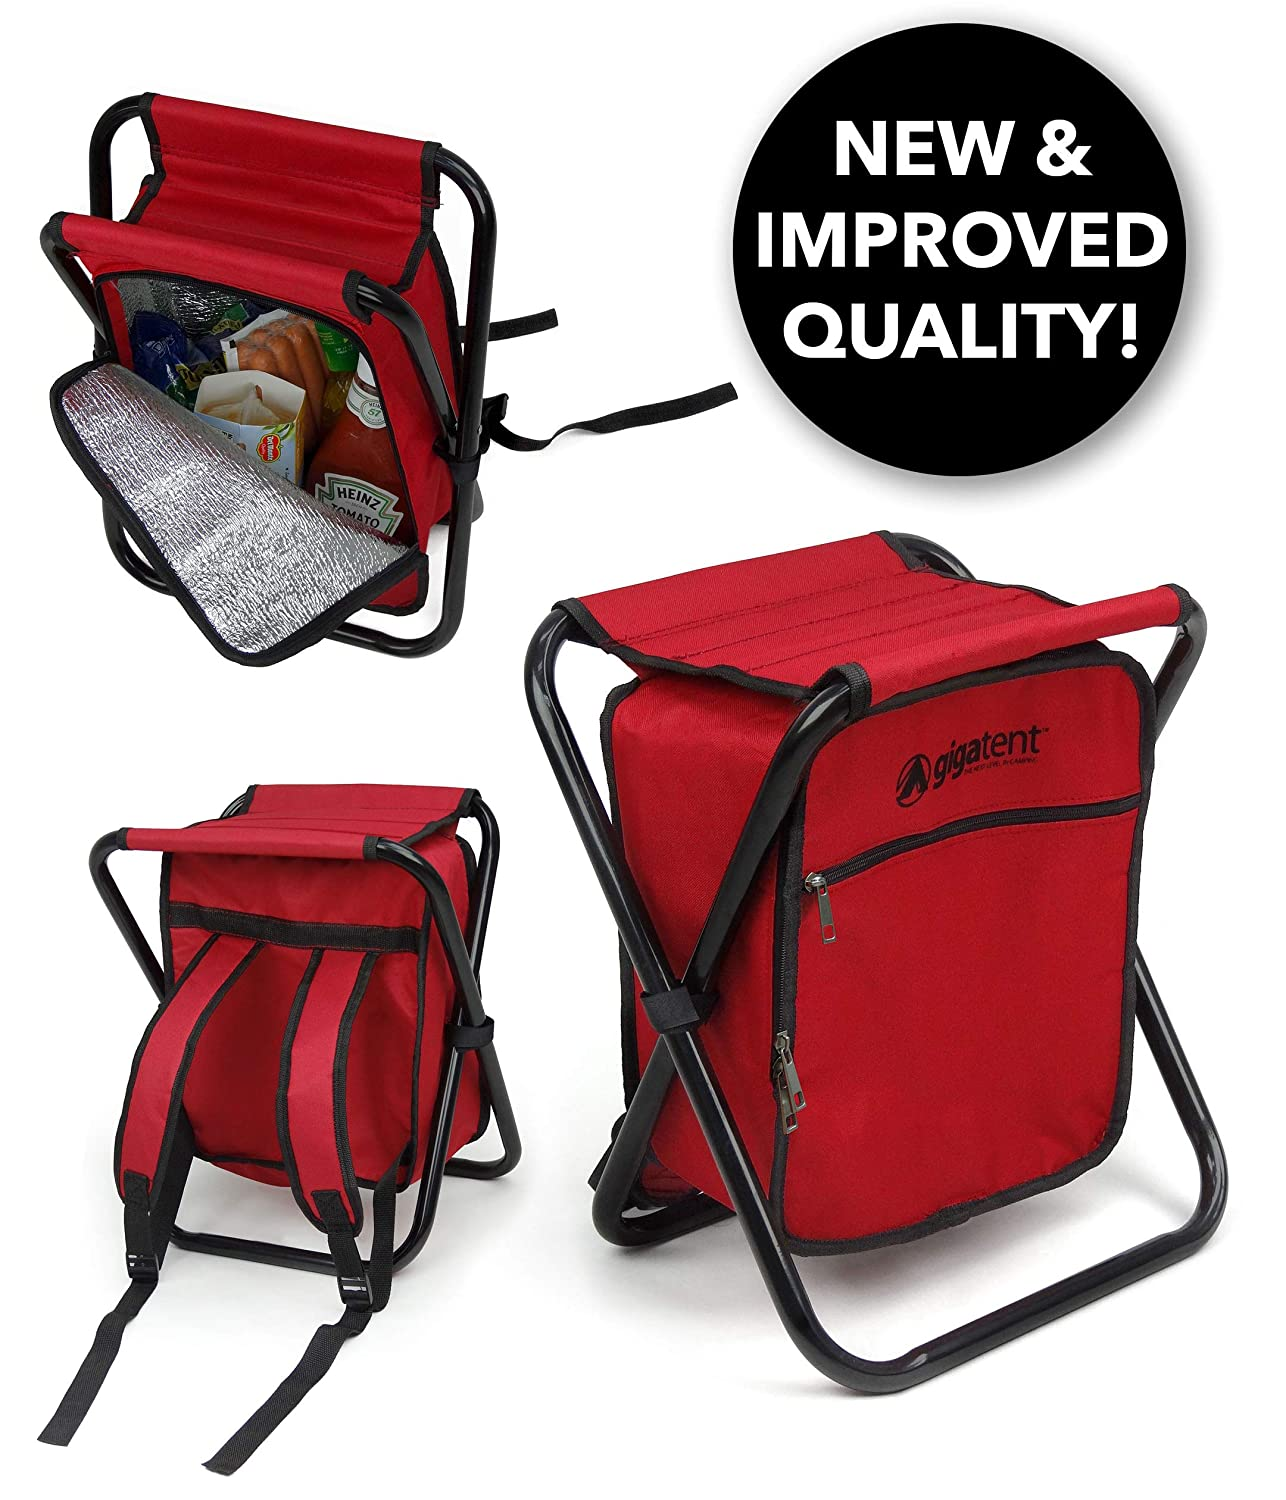 GigaTent Folding Cooler and Stool Backpack Backpack With Cooler Compartment Insulated Backpack Cooler Bag